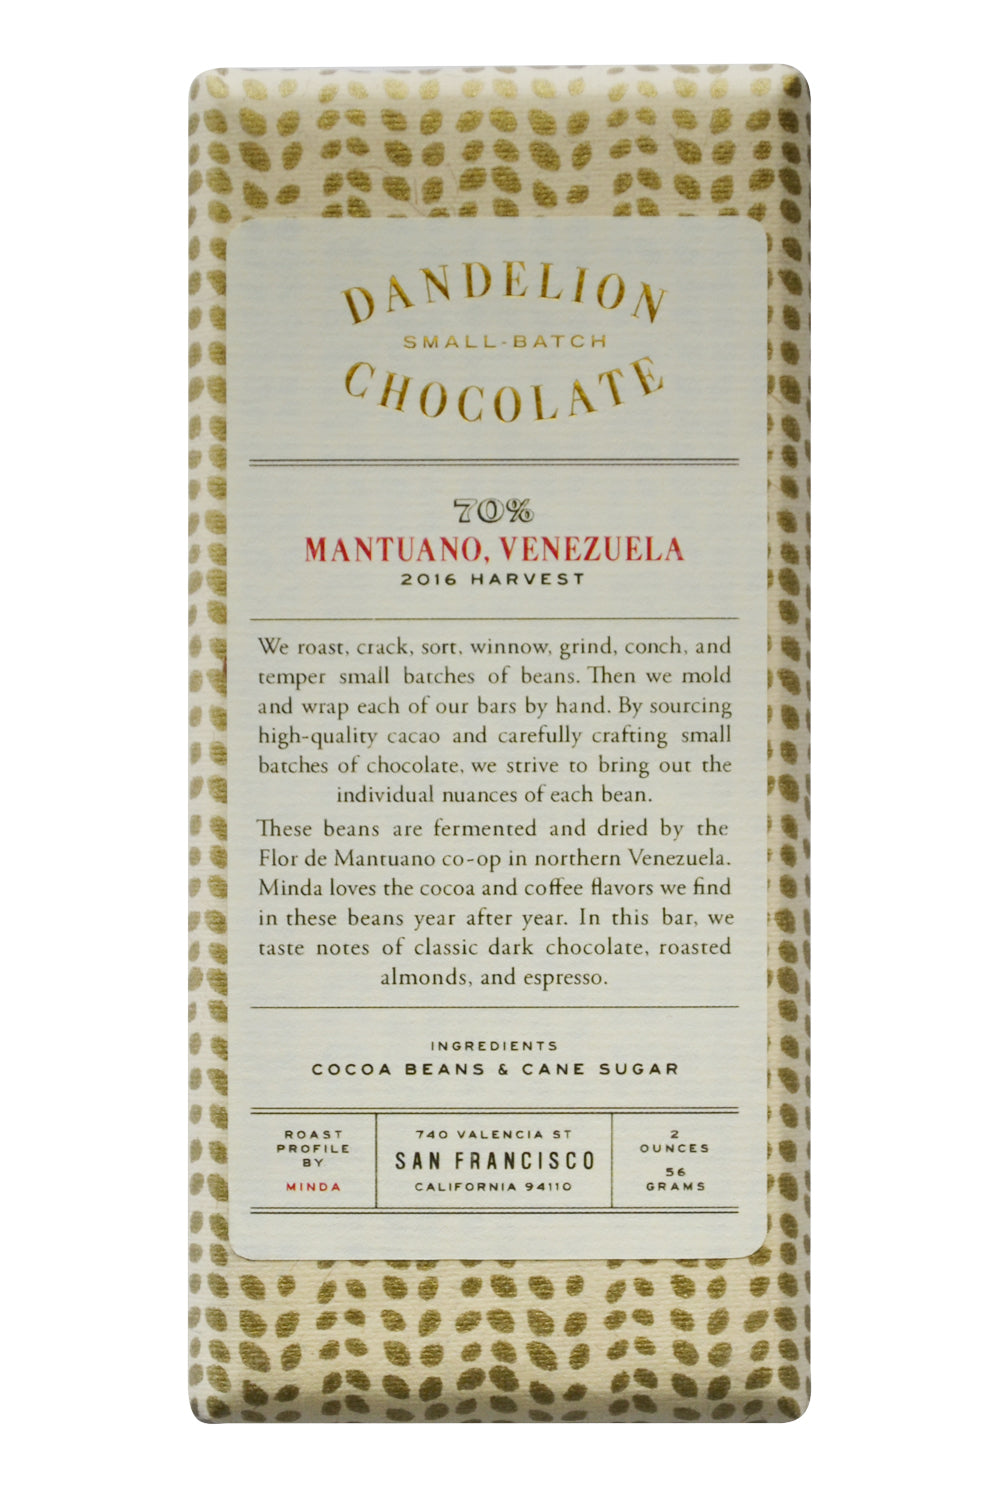 Dandelion Dark Chocolate - Mantuano